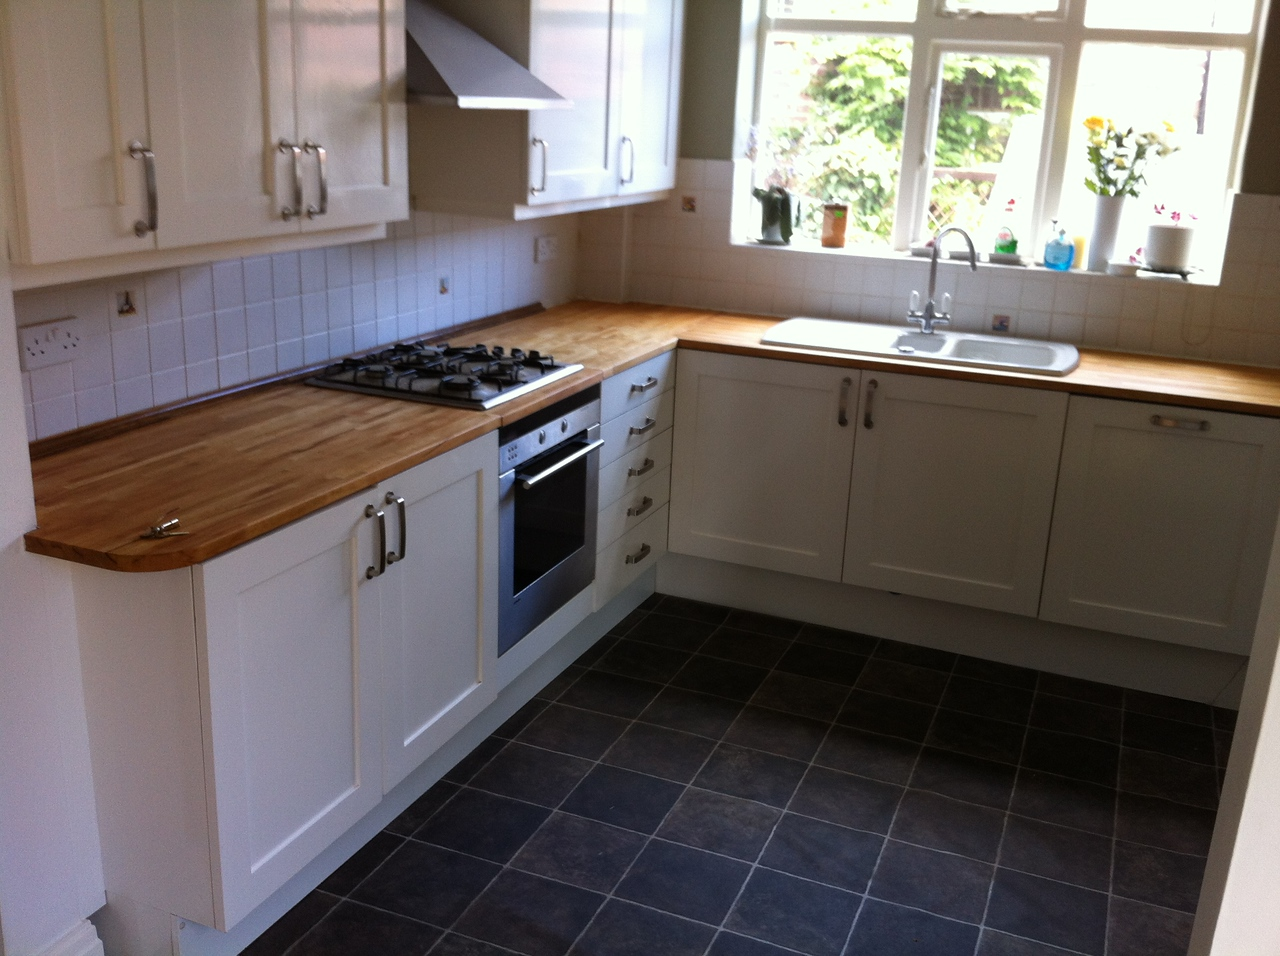 "Kitchen worktop repair and oiling by  <a href=""http://www.harrisonwoodowrk.com"">http://www.harrisonwoodowrk.com</a> in urmston manchester"